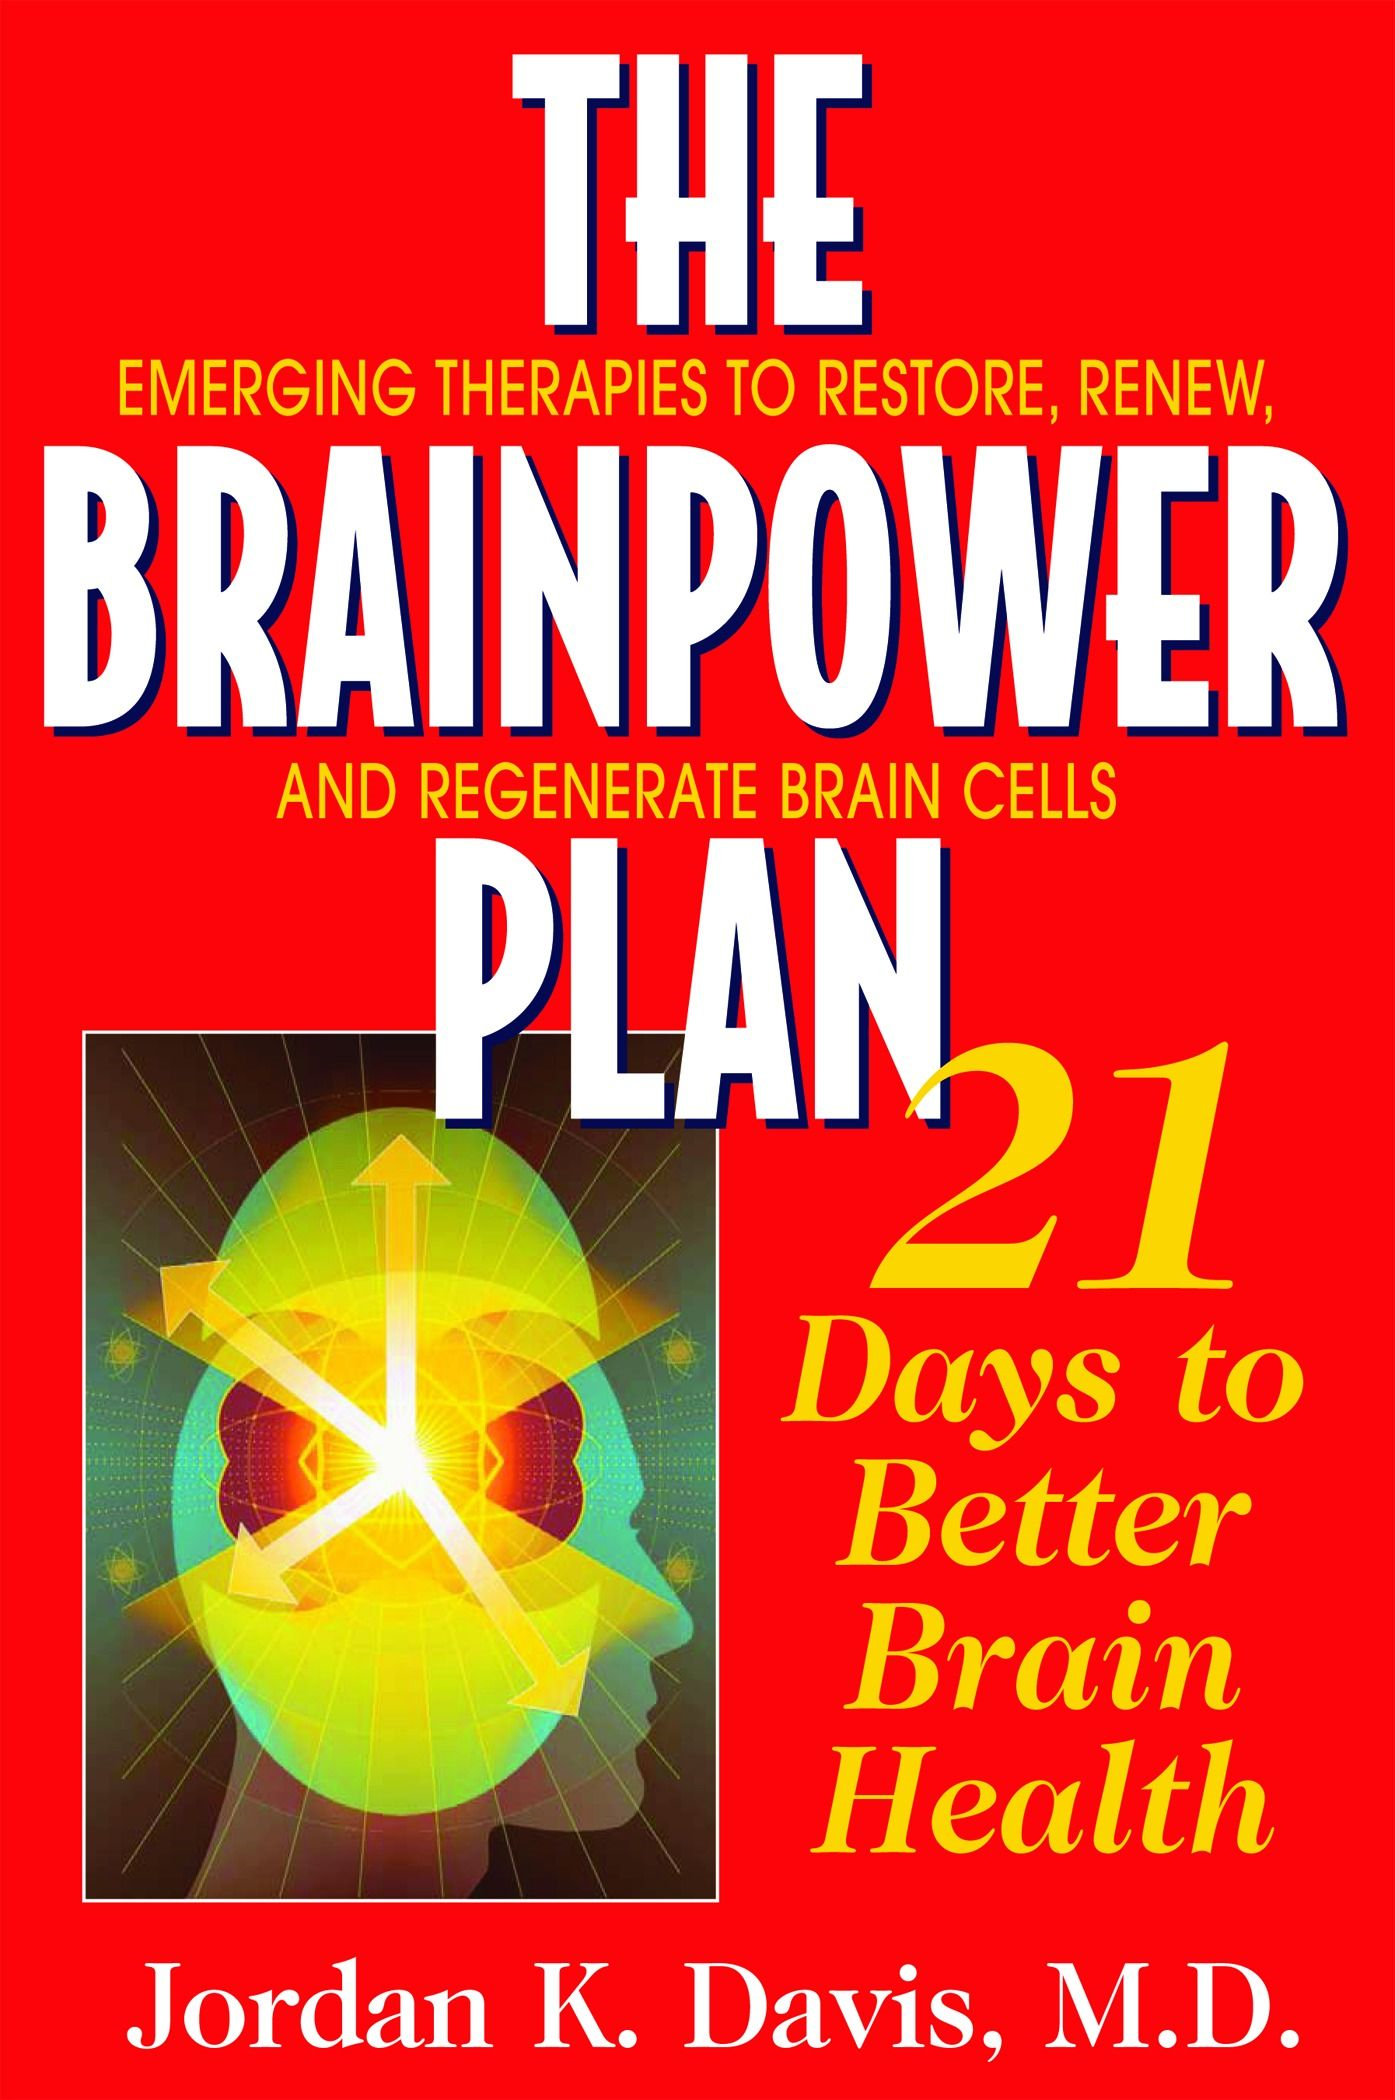 The Brainpower Plan : 21 Days To Better Brain Health